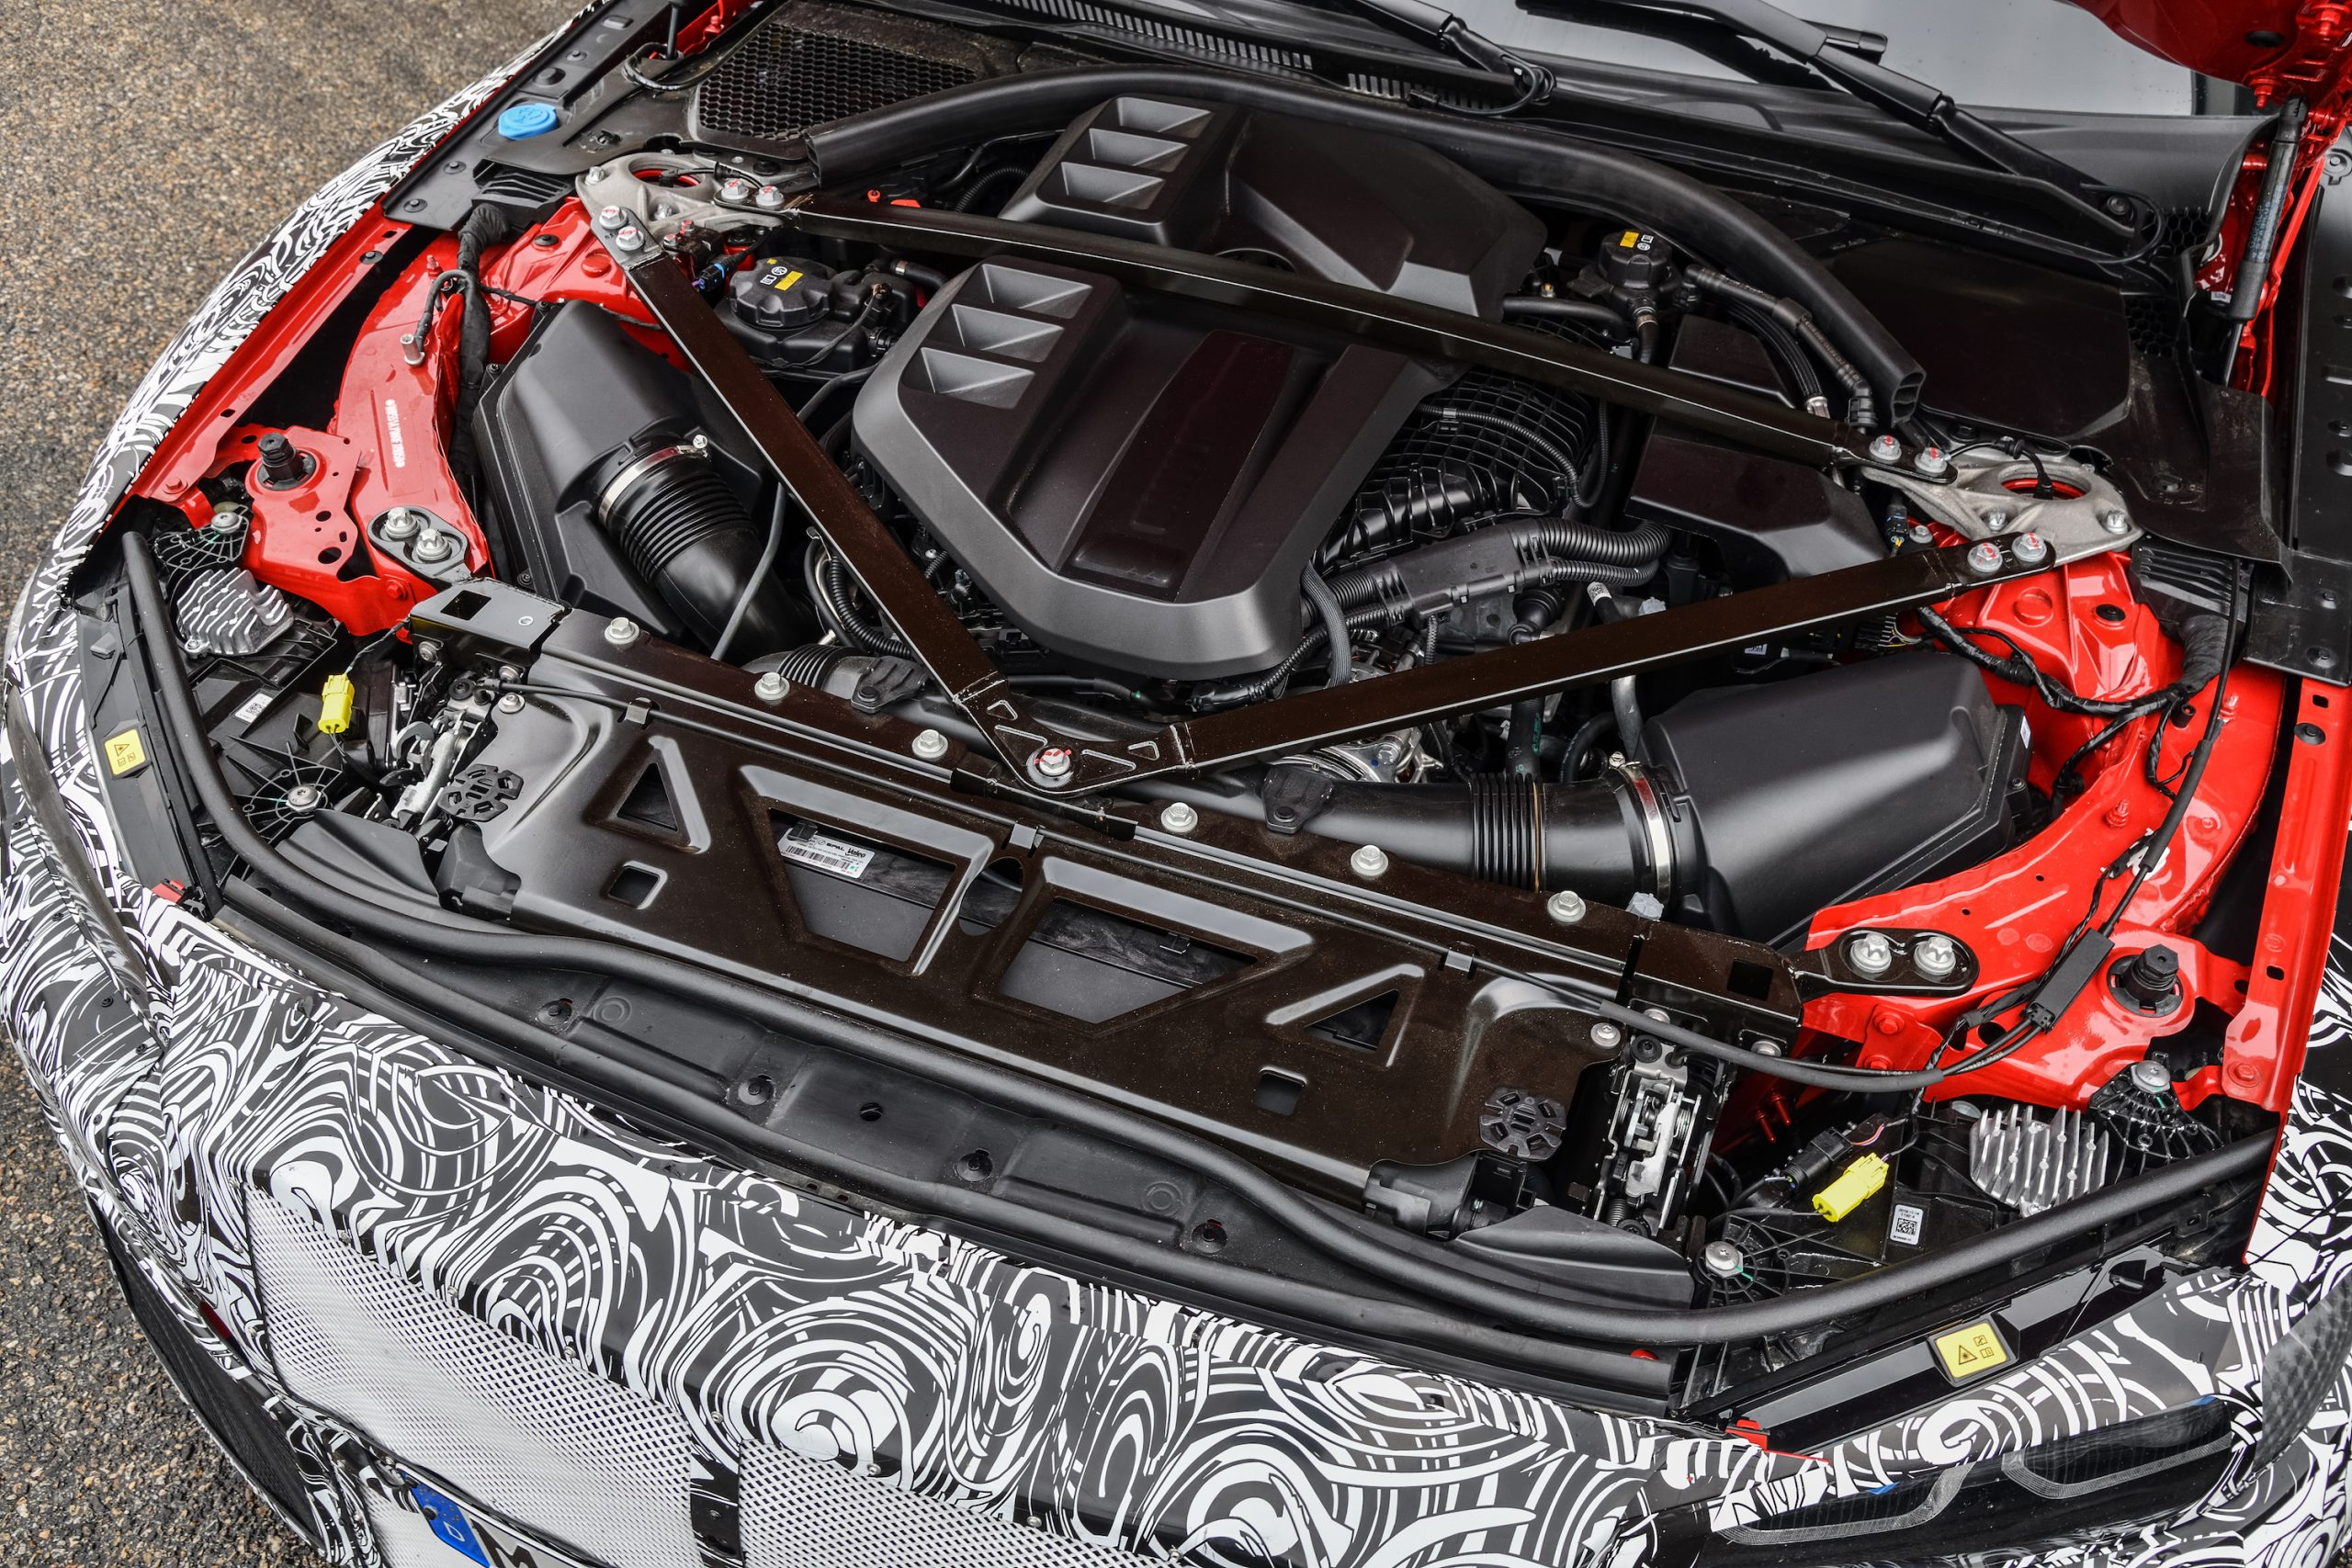 BMW M4 Coupe Engine Bay